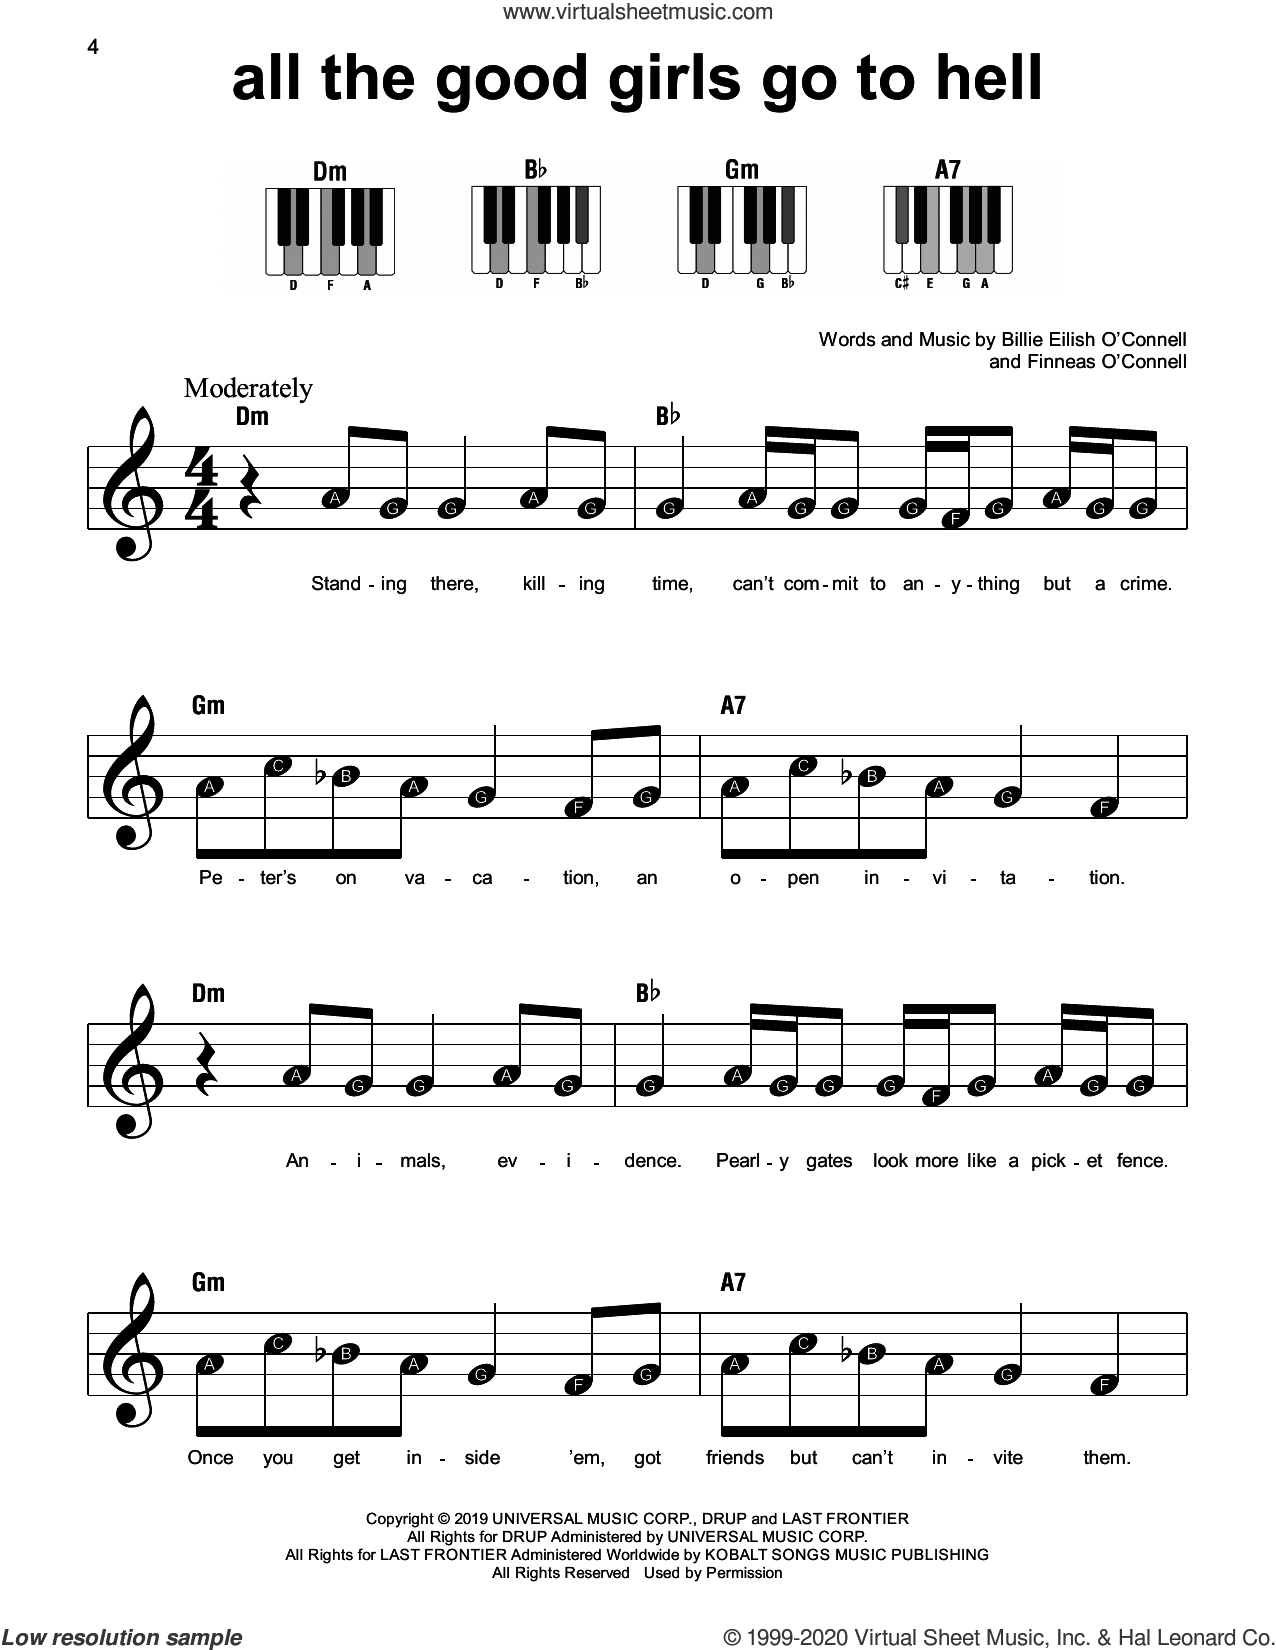 all the good girls go to hell sheet music for piano solo by Billie Eilish, beginner skill level